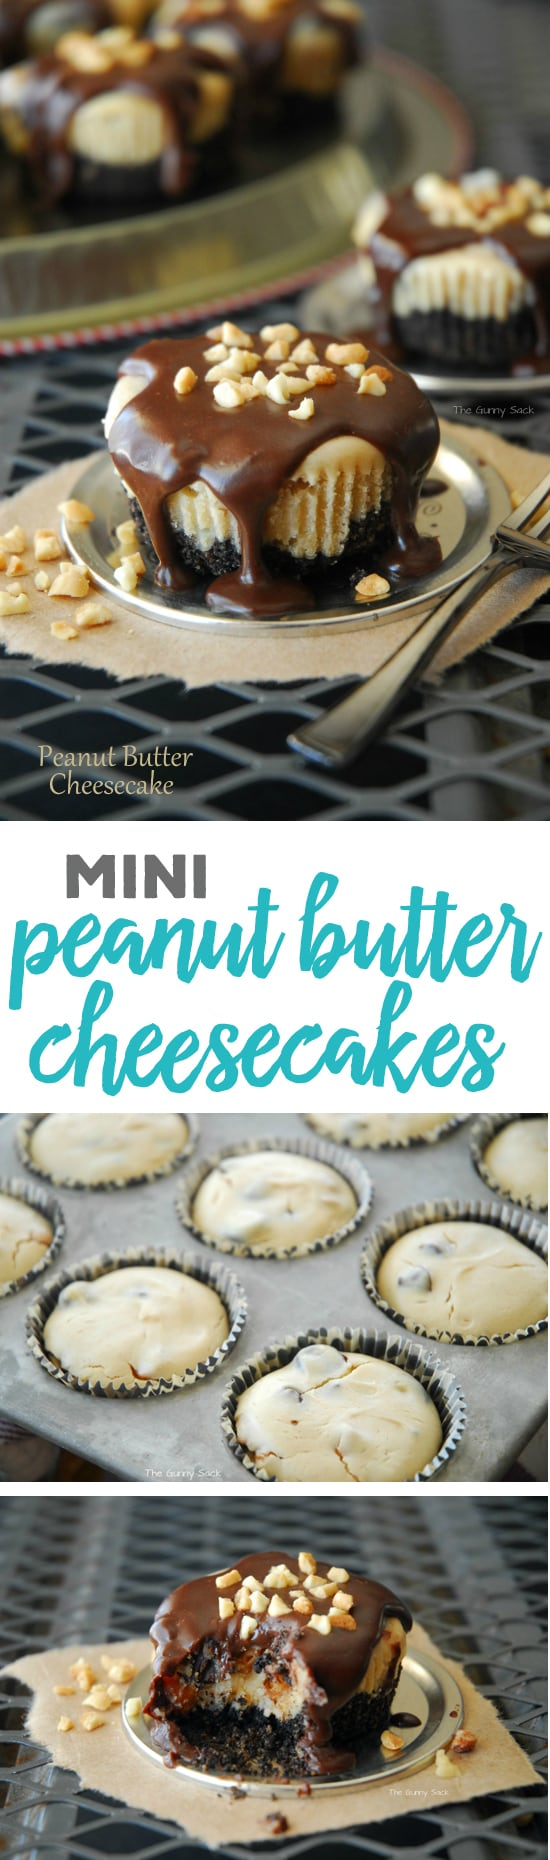 Mini Peanut Butter Cheesecakes Recipe